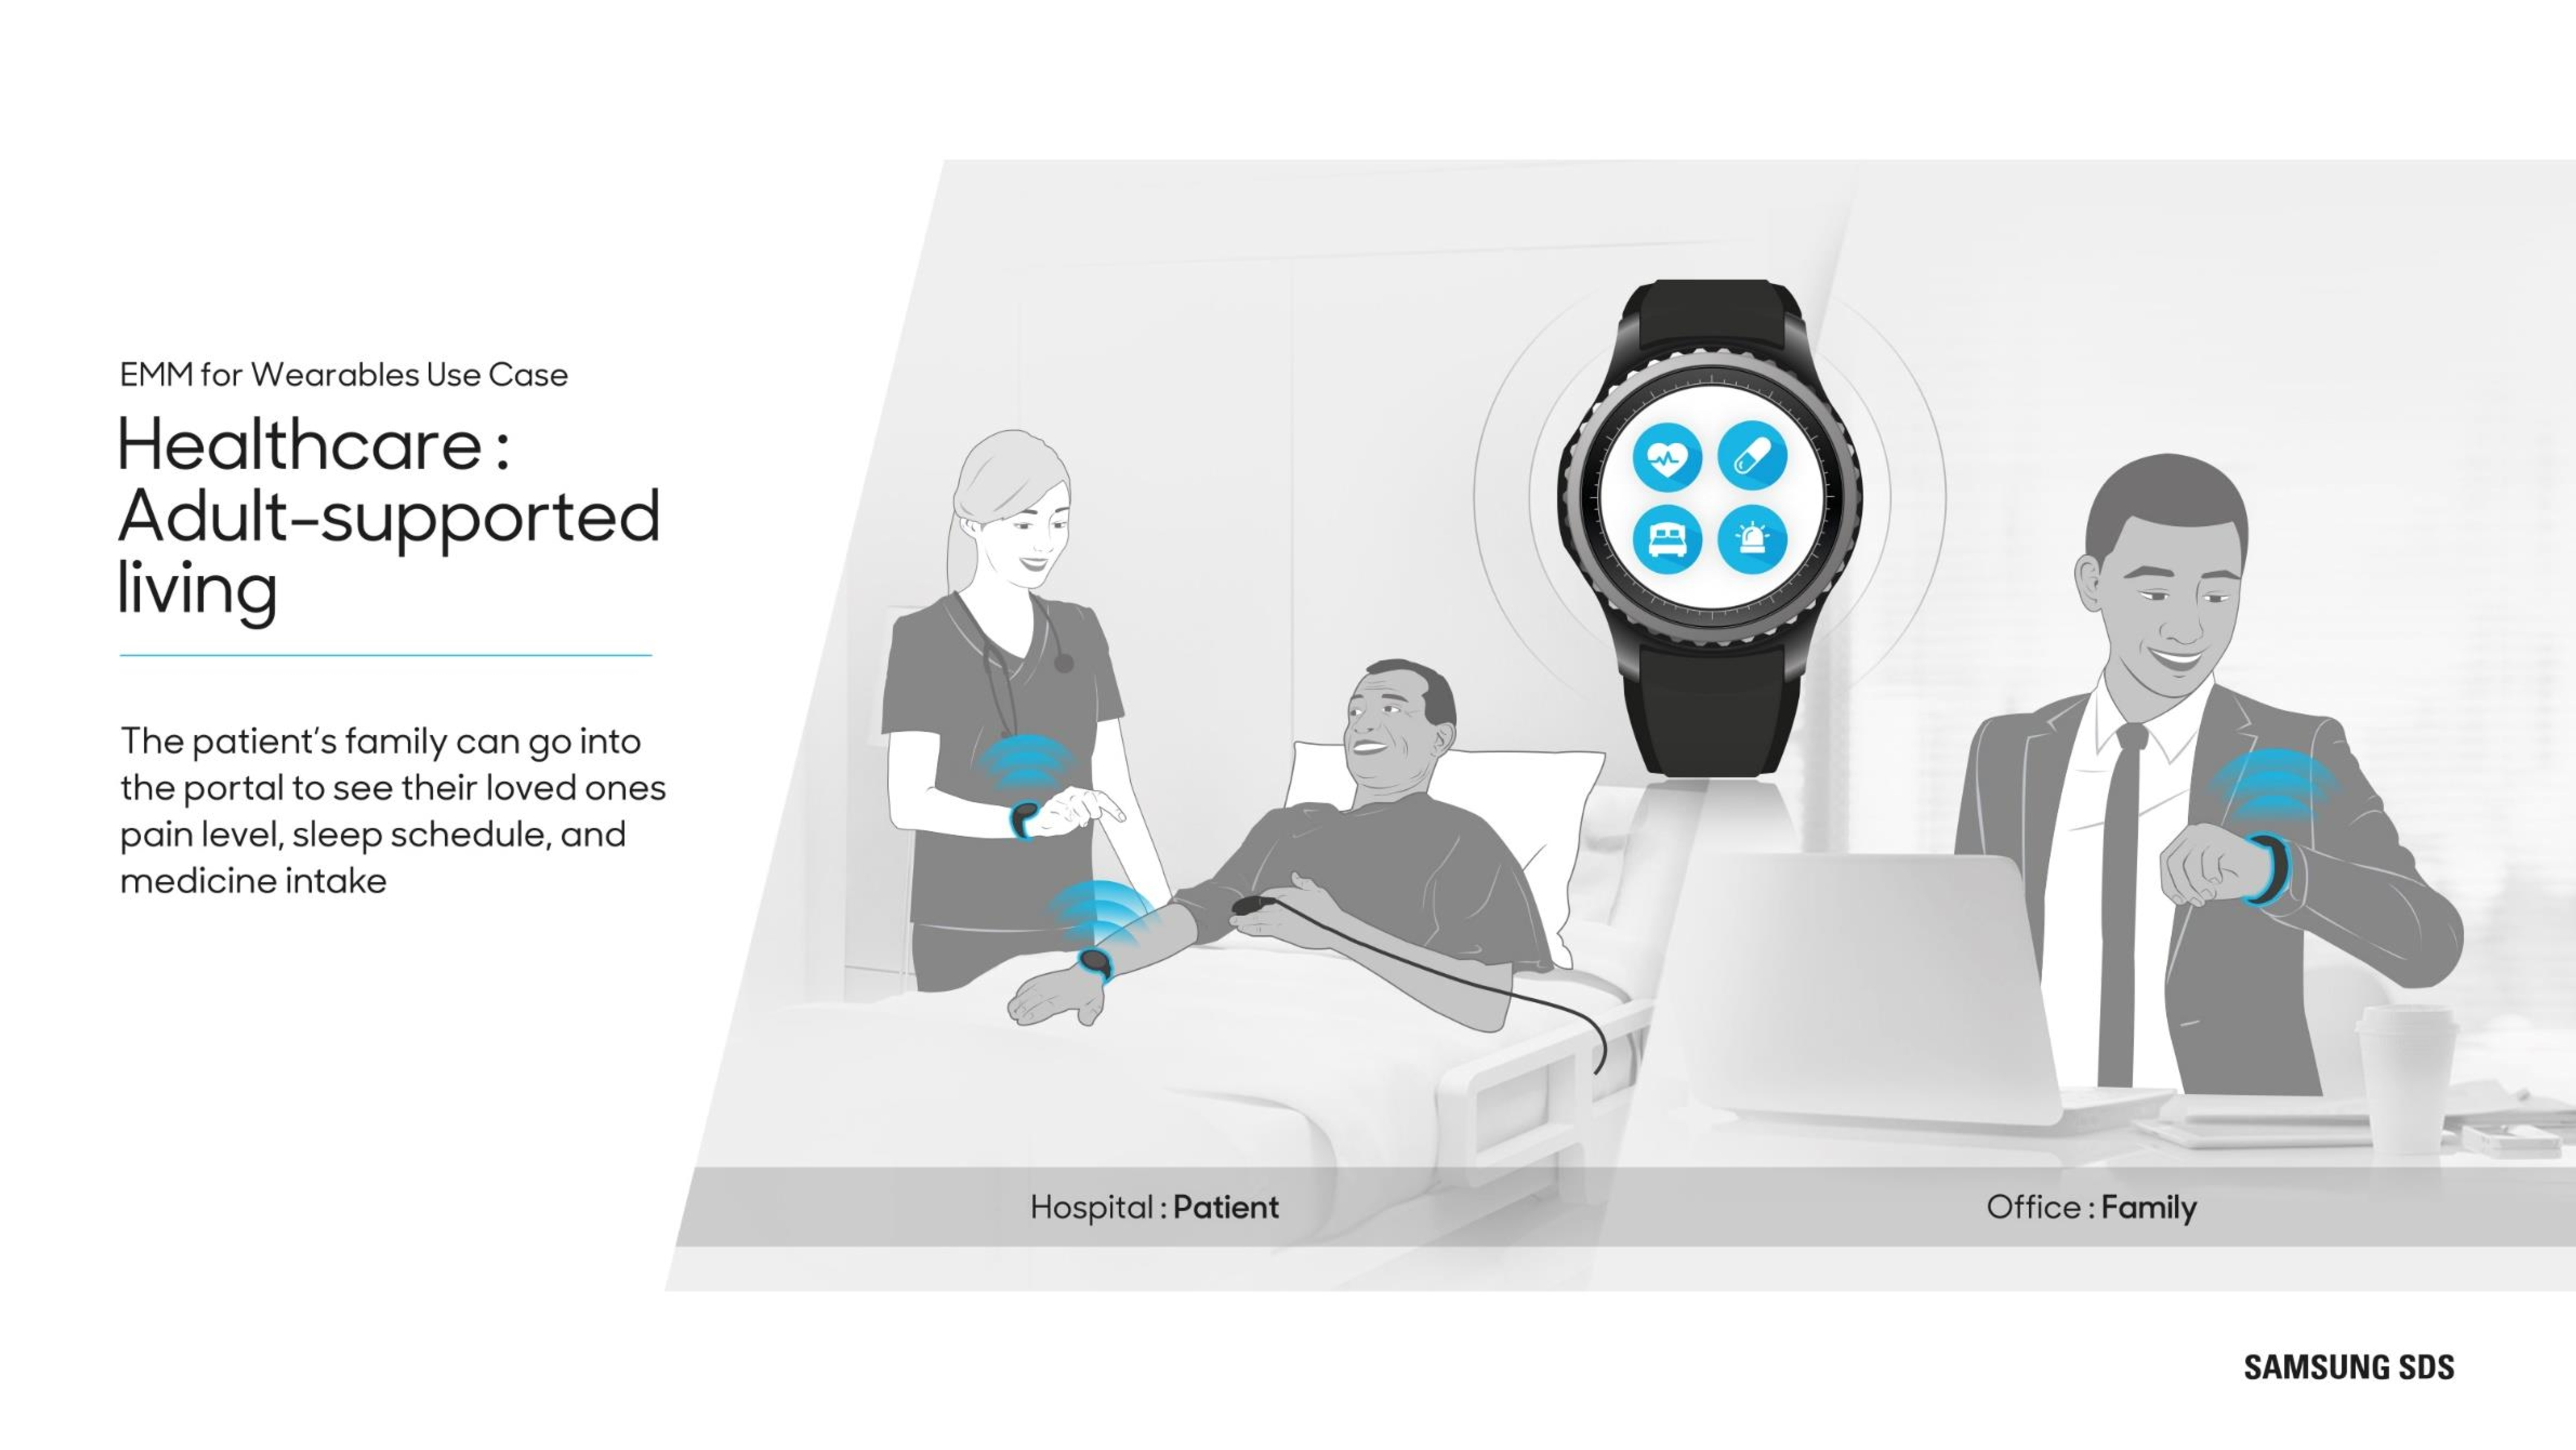 Wearables in Healthcare The patient's family can go into the portal to see their loved ones pain level, sleep schedule, and medicine intake.